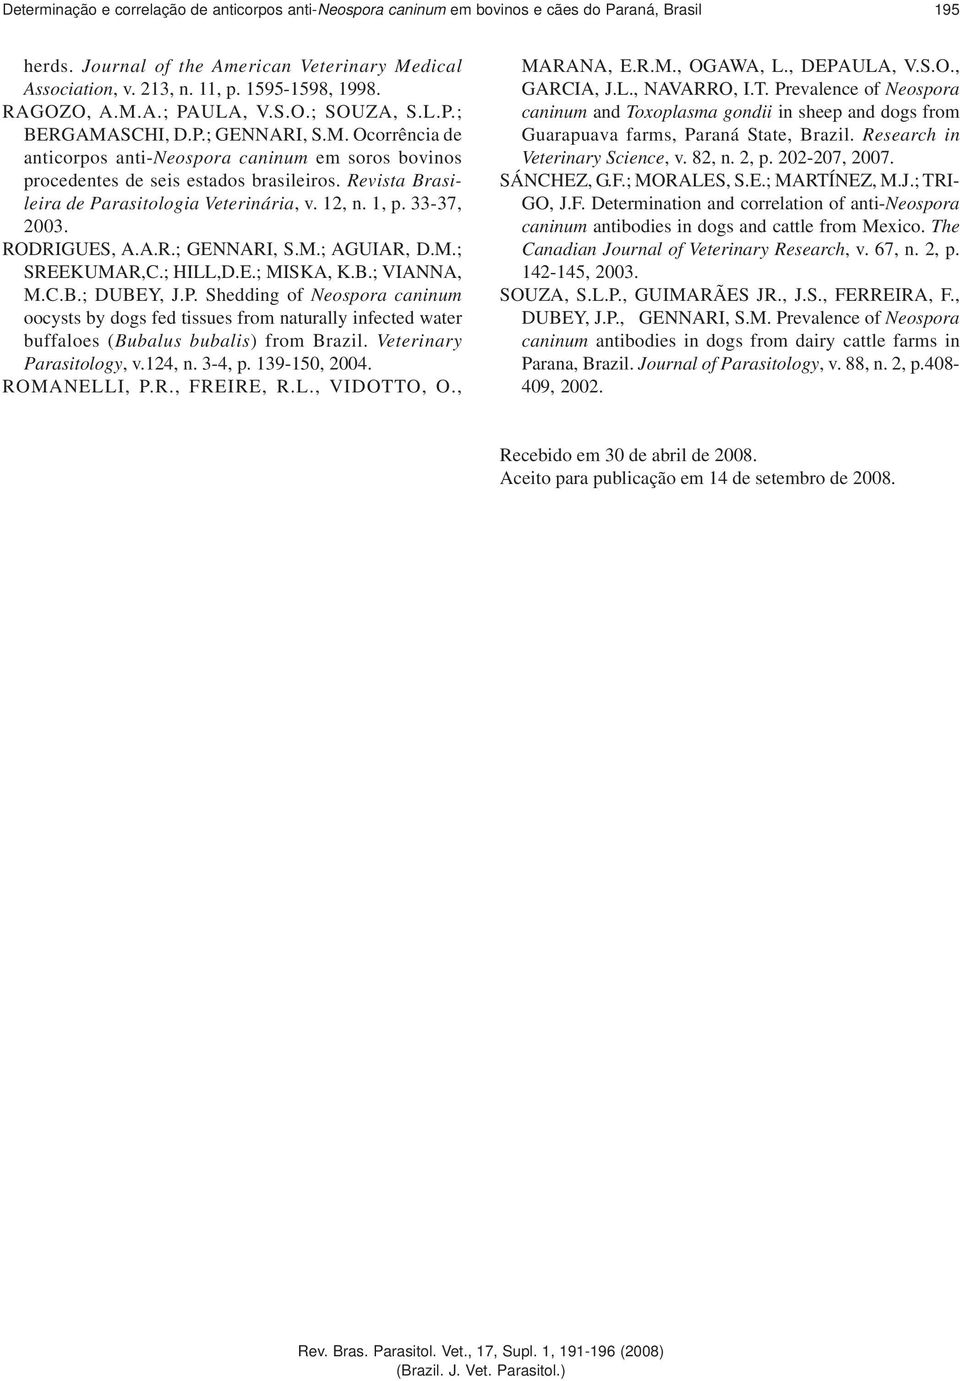 Revista Brasileira de Parasitologia Veterinária, v. 12, n. 1, p. 33-37, 2003. RODRIGUES, A.A.R.; GENNARI, S.M.; AGUIAR, D.M.; SREEKUMAR,C.; HILL,D.E.; MISKA, K.B.; VIANNA, M.C.B.; DUBEY, J.P. Shedding of Neospora caninum oocysts by dogs fed tissues from naturally infected water buffaloes (Bubalus bubalis) from Brazil.